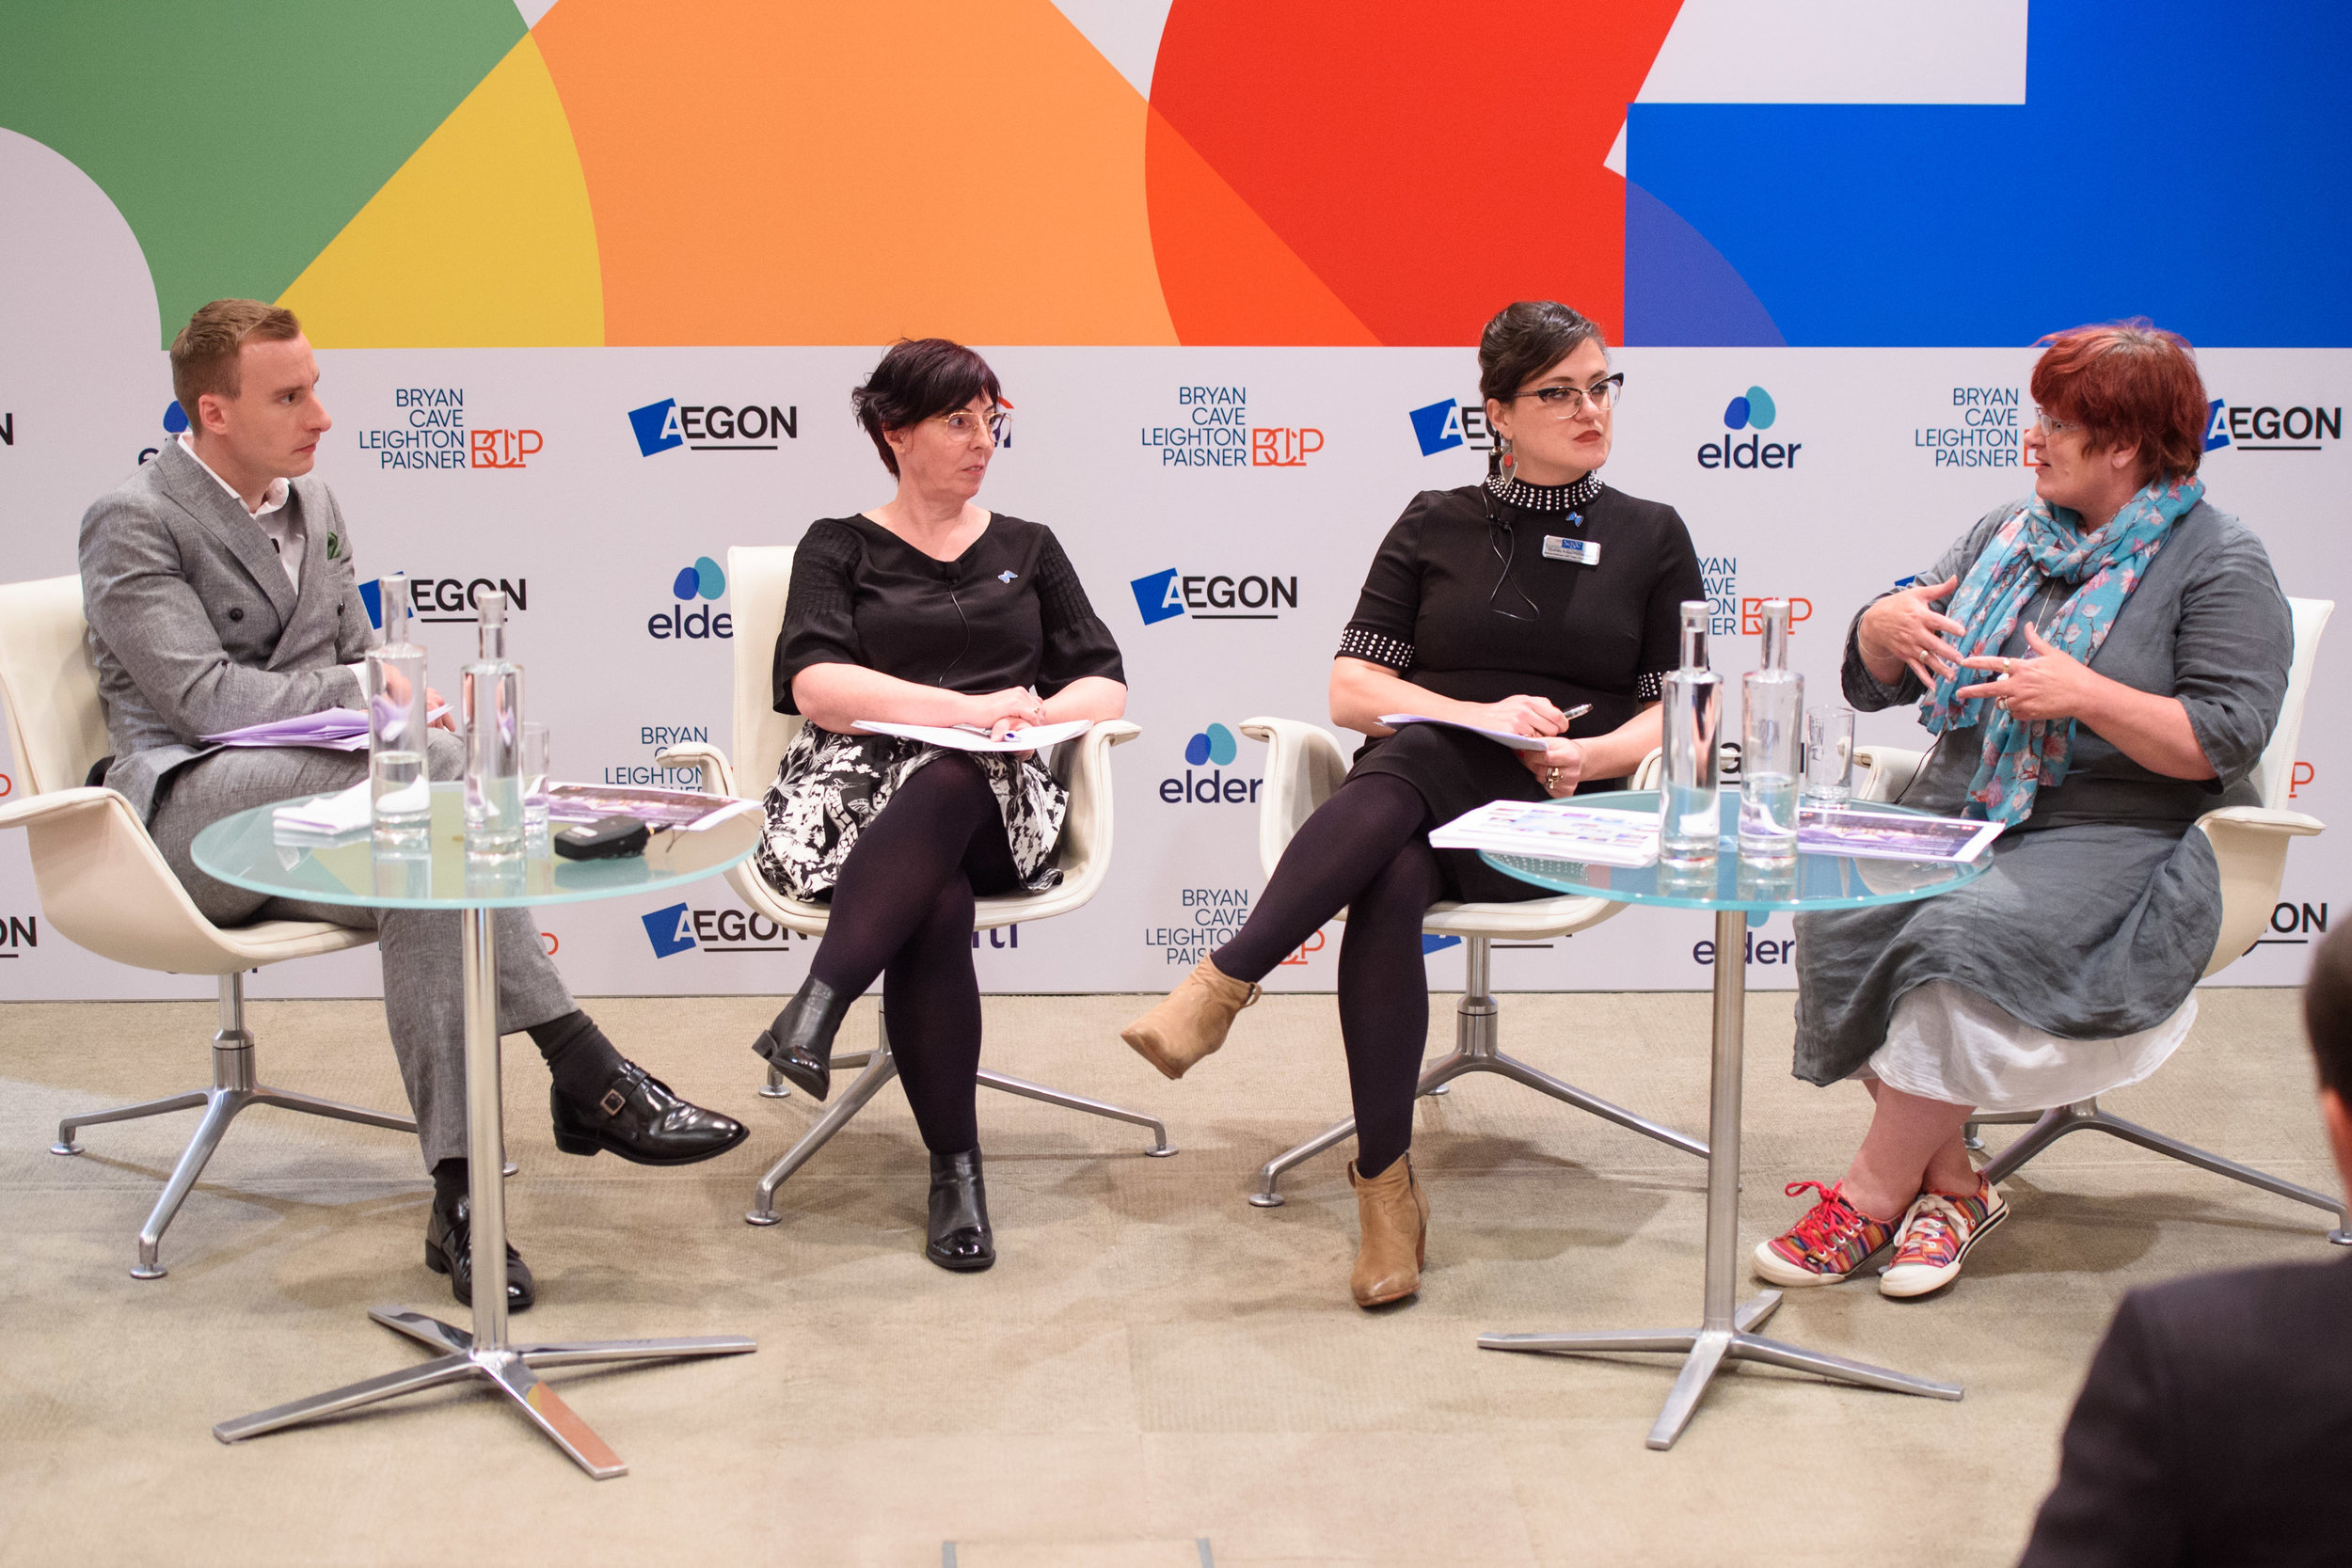 Chair Paul Brand, Anna Kear, Sydney Kopp-Richardson (SAGE USA) and Tina Wathern (Stonewall Housing) speaking at the PinkNews Ageing Summit 2019, at Adelaide House in London. (Matt Crossick/PA Wire)